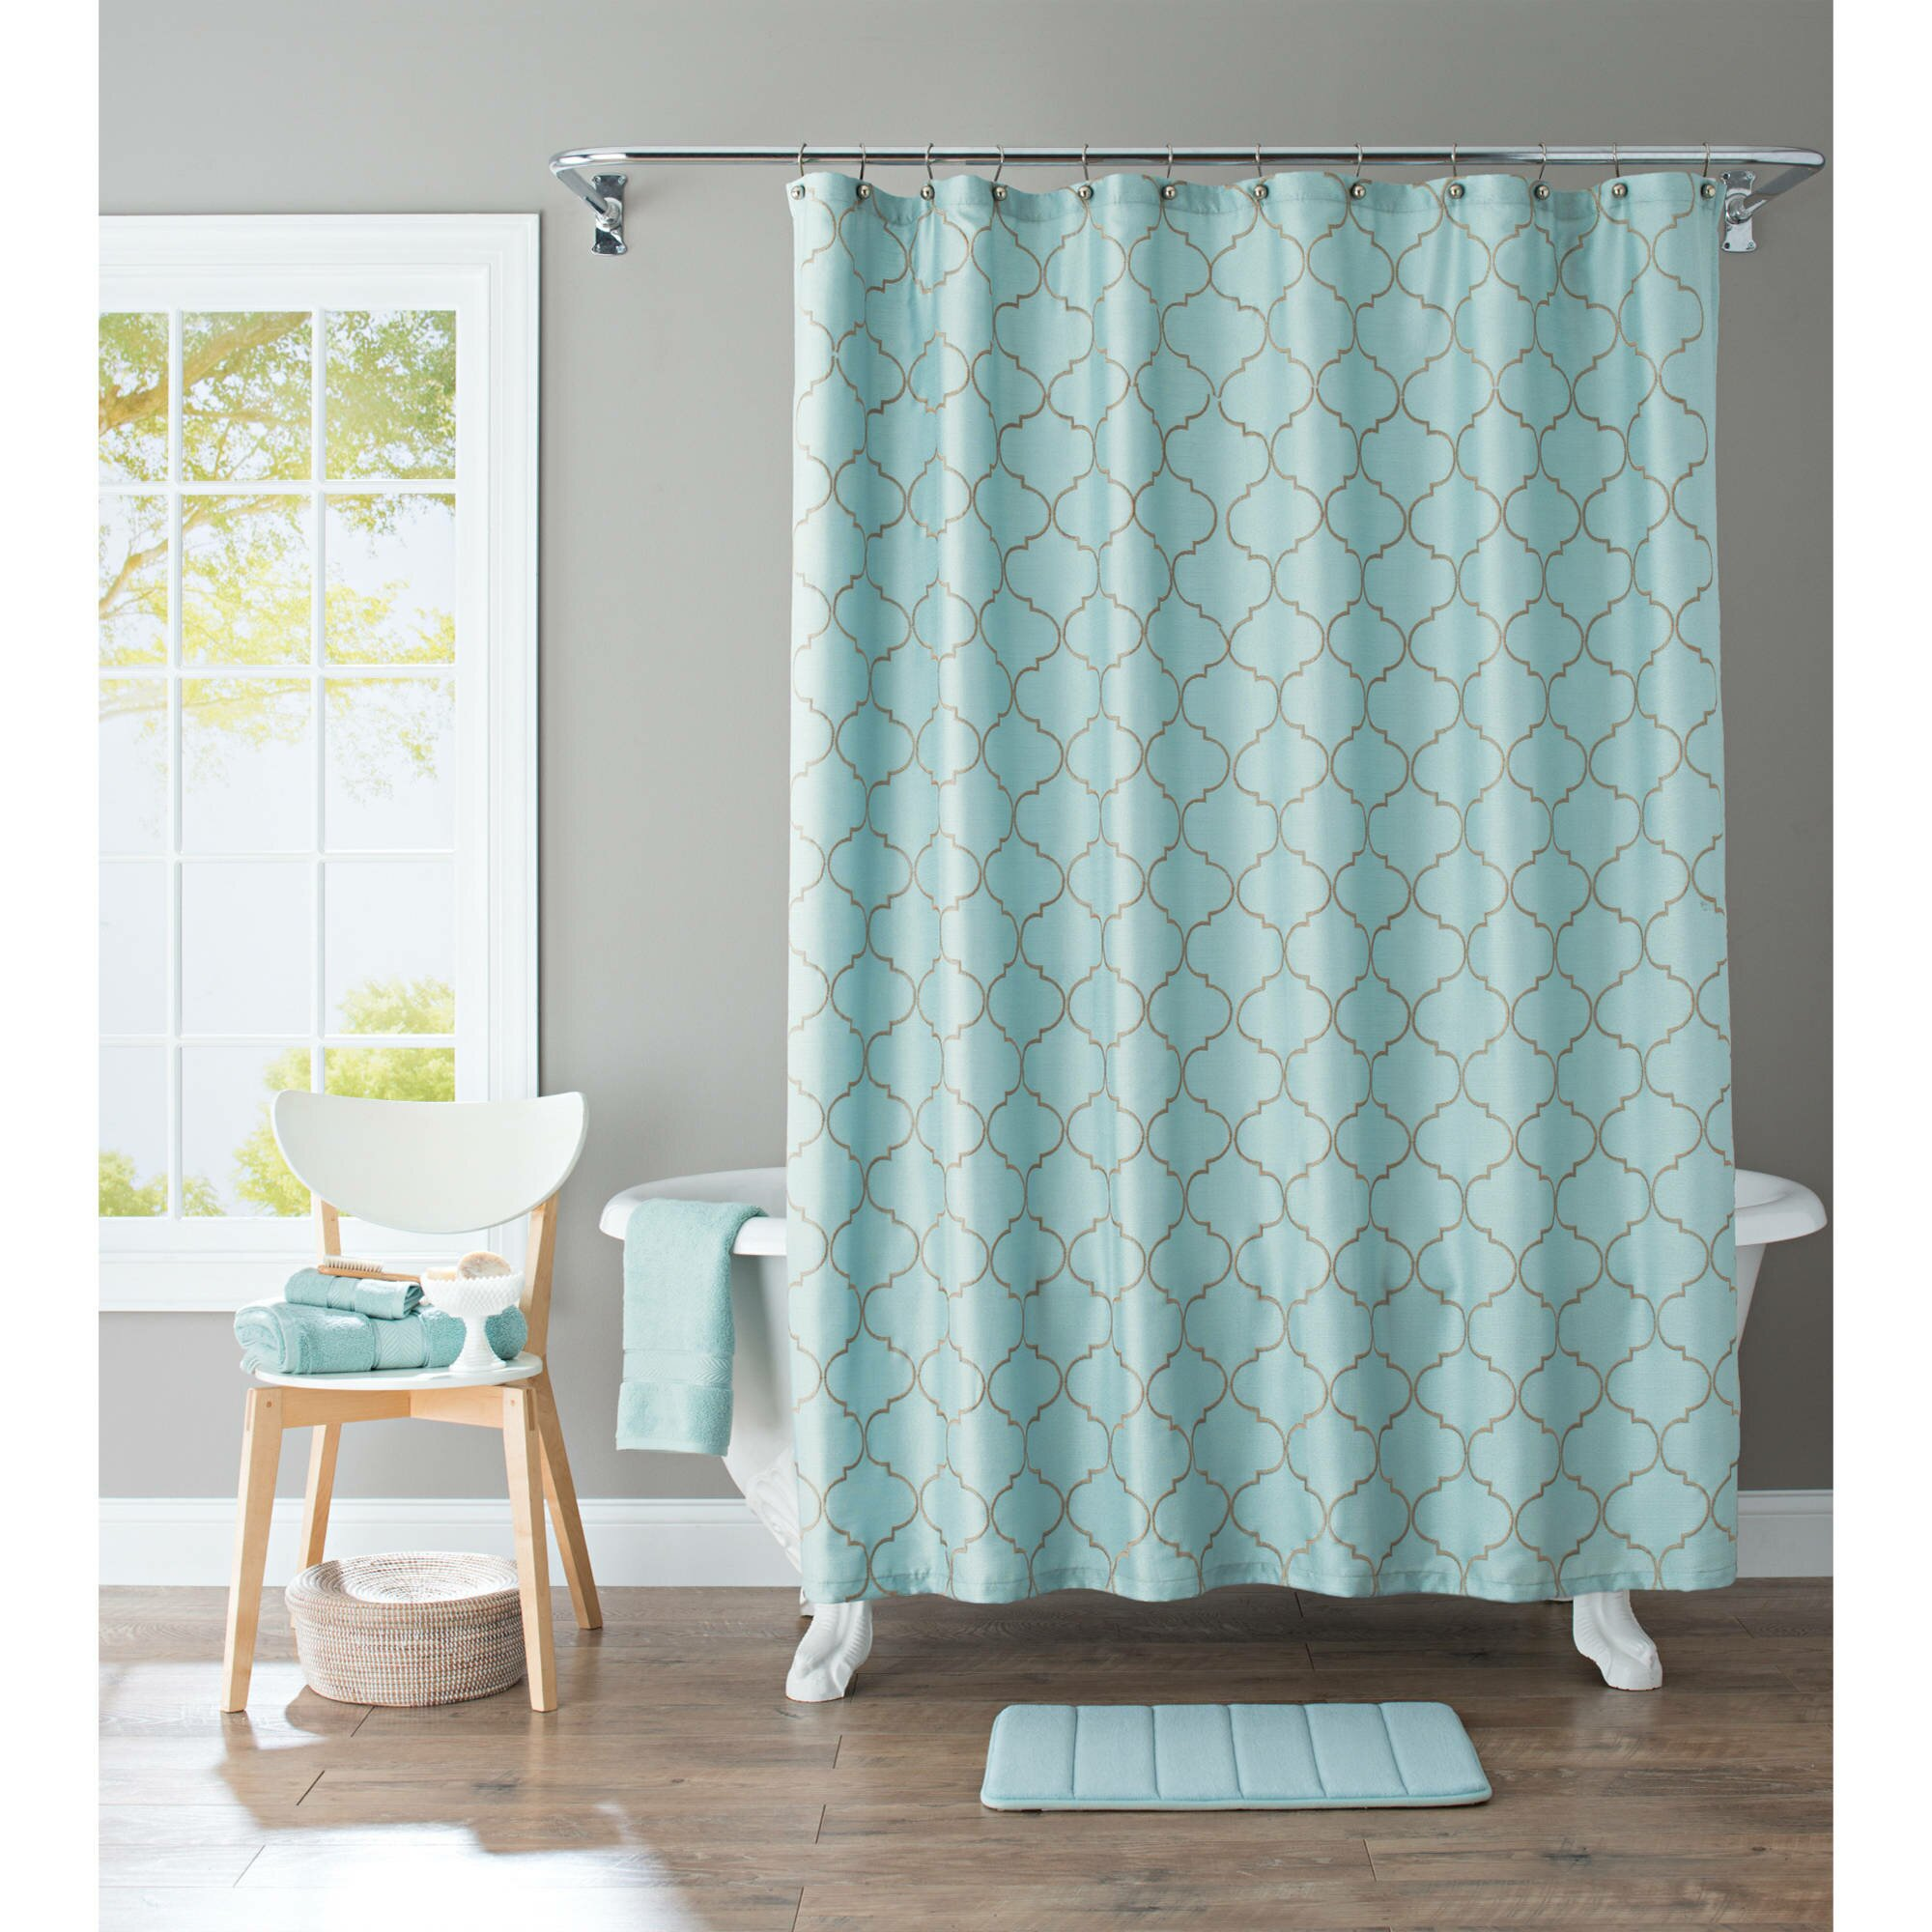 Walmart Shower Curtain | Dragonfly Shower Curtain Walmart | Wal Mart Shower Curtain